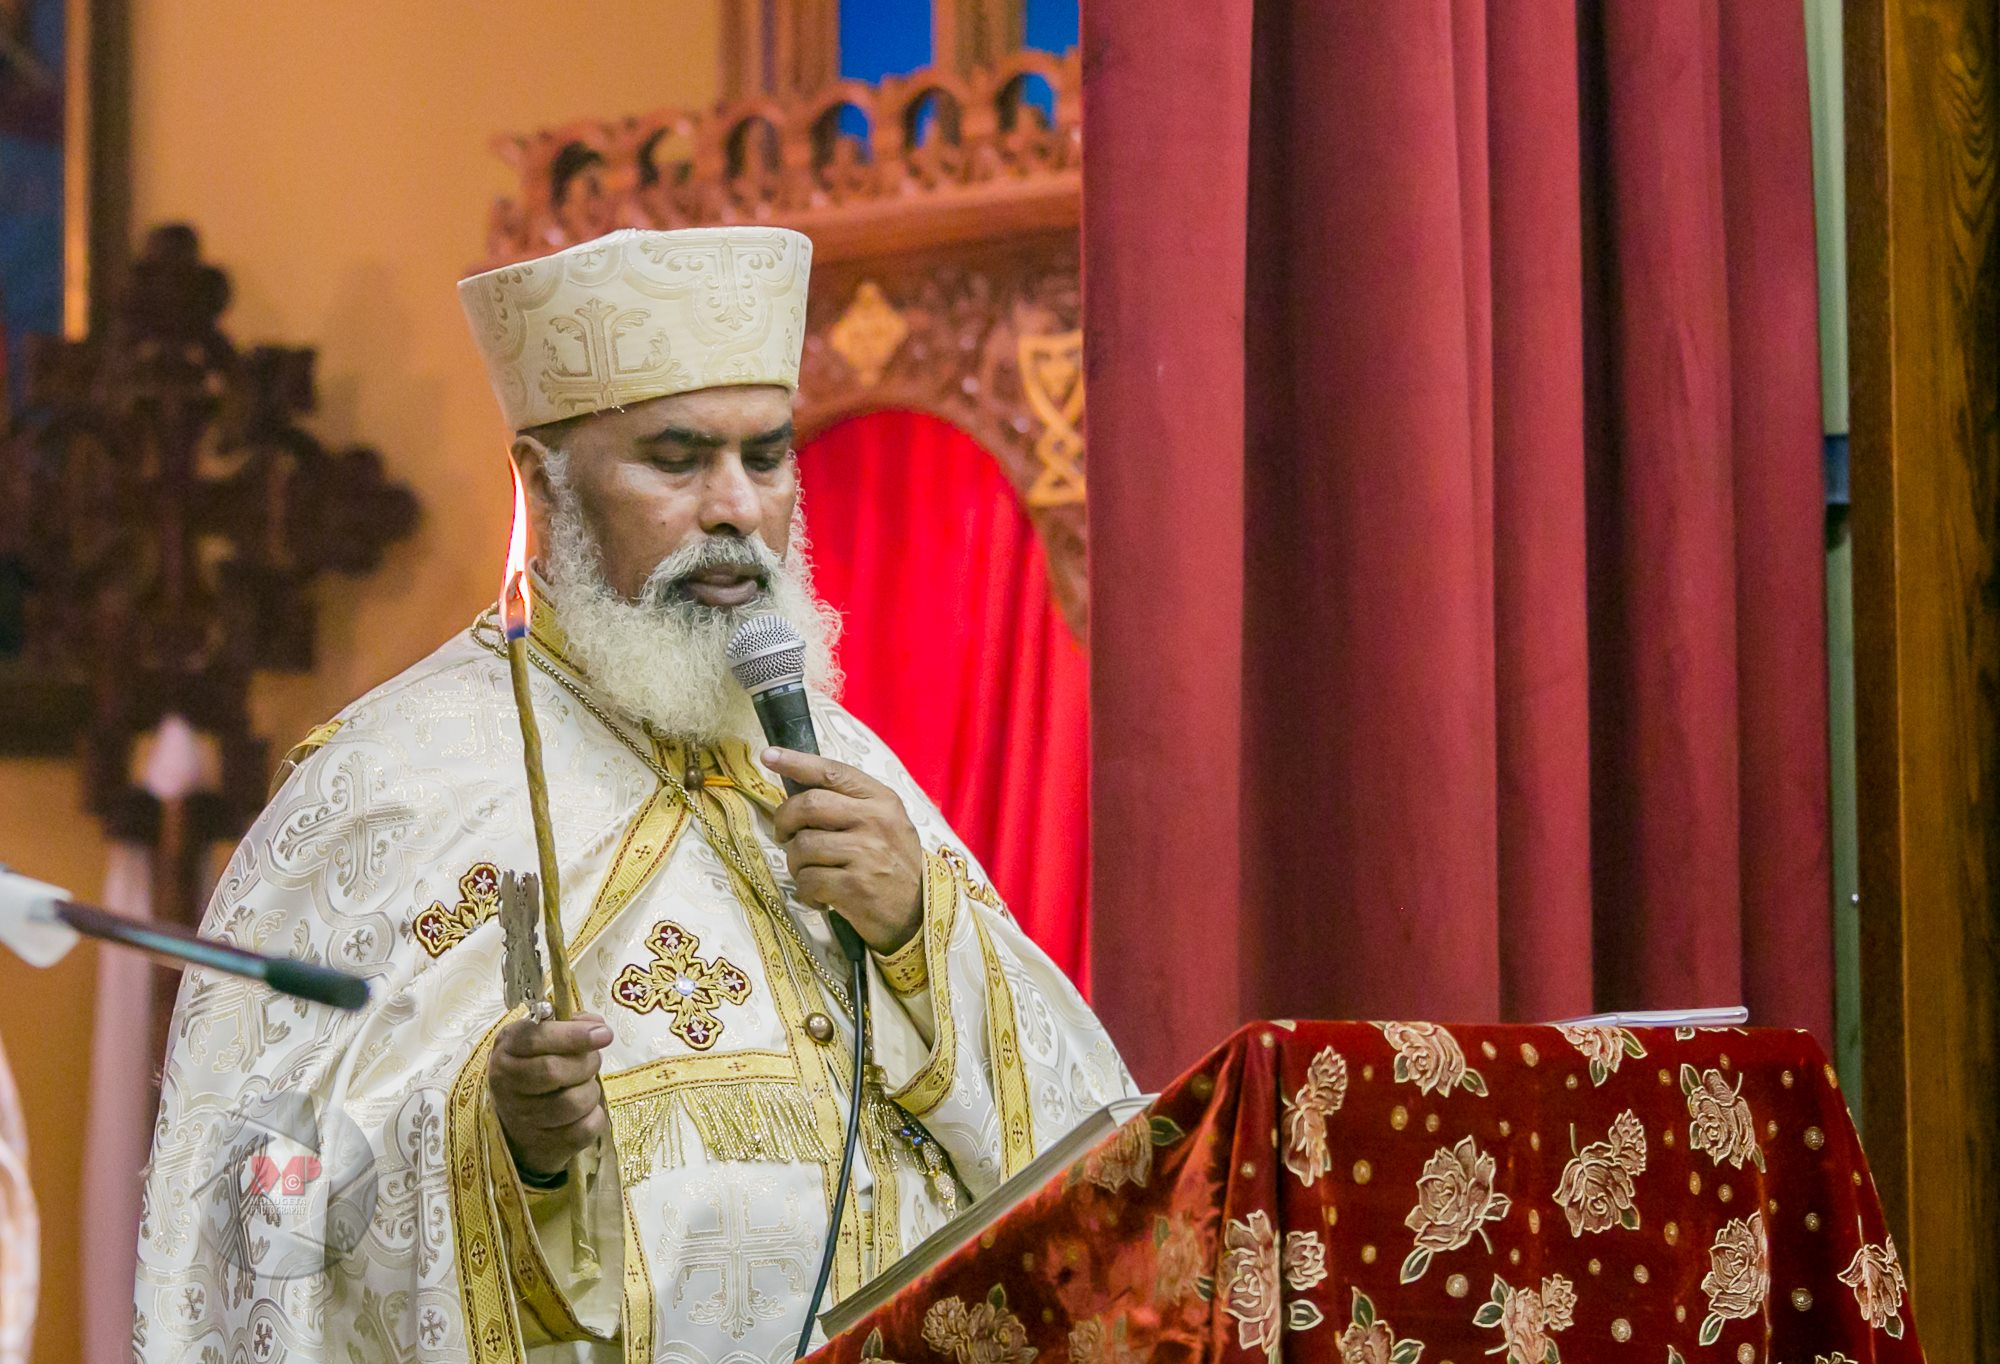 Divine Services @ EOTC - Menbere Berhan Kidest Mariam Cathedral